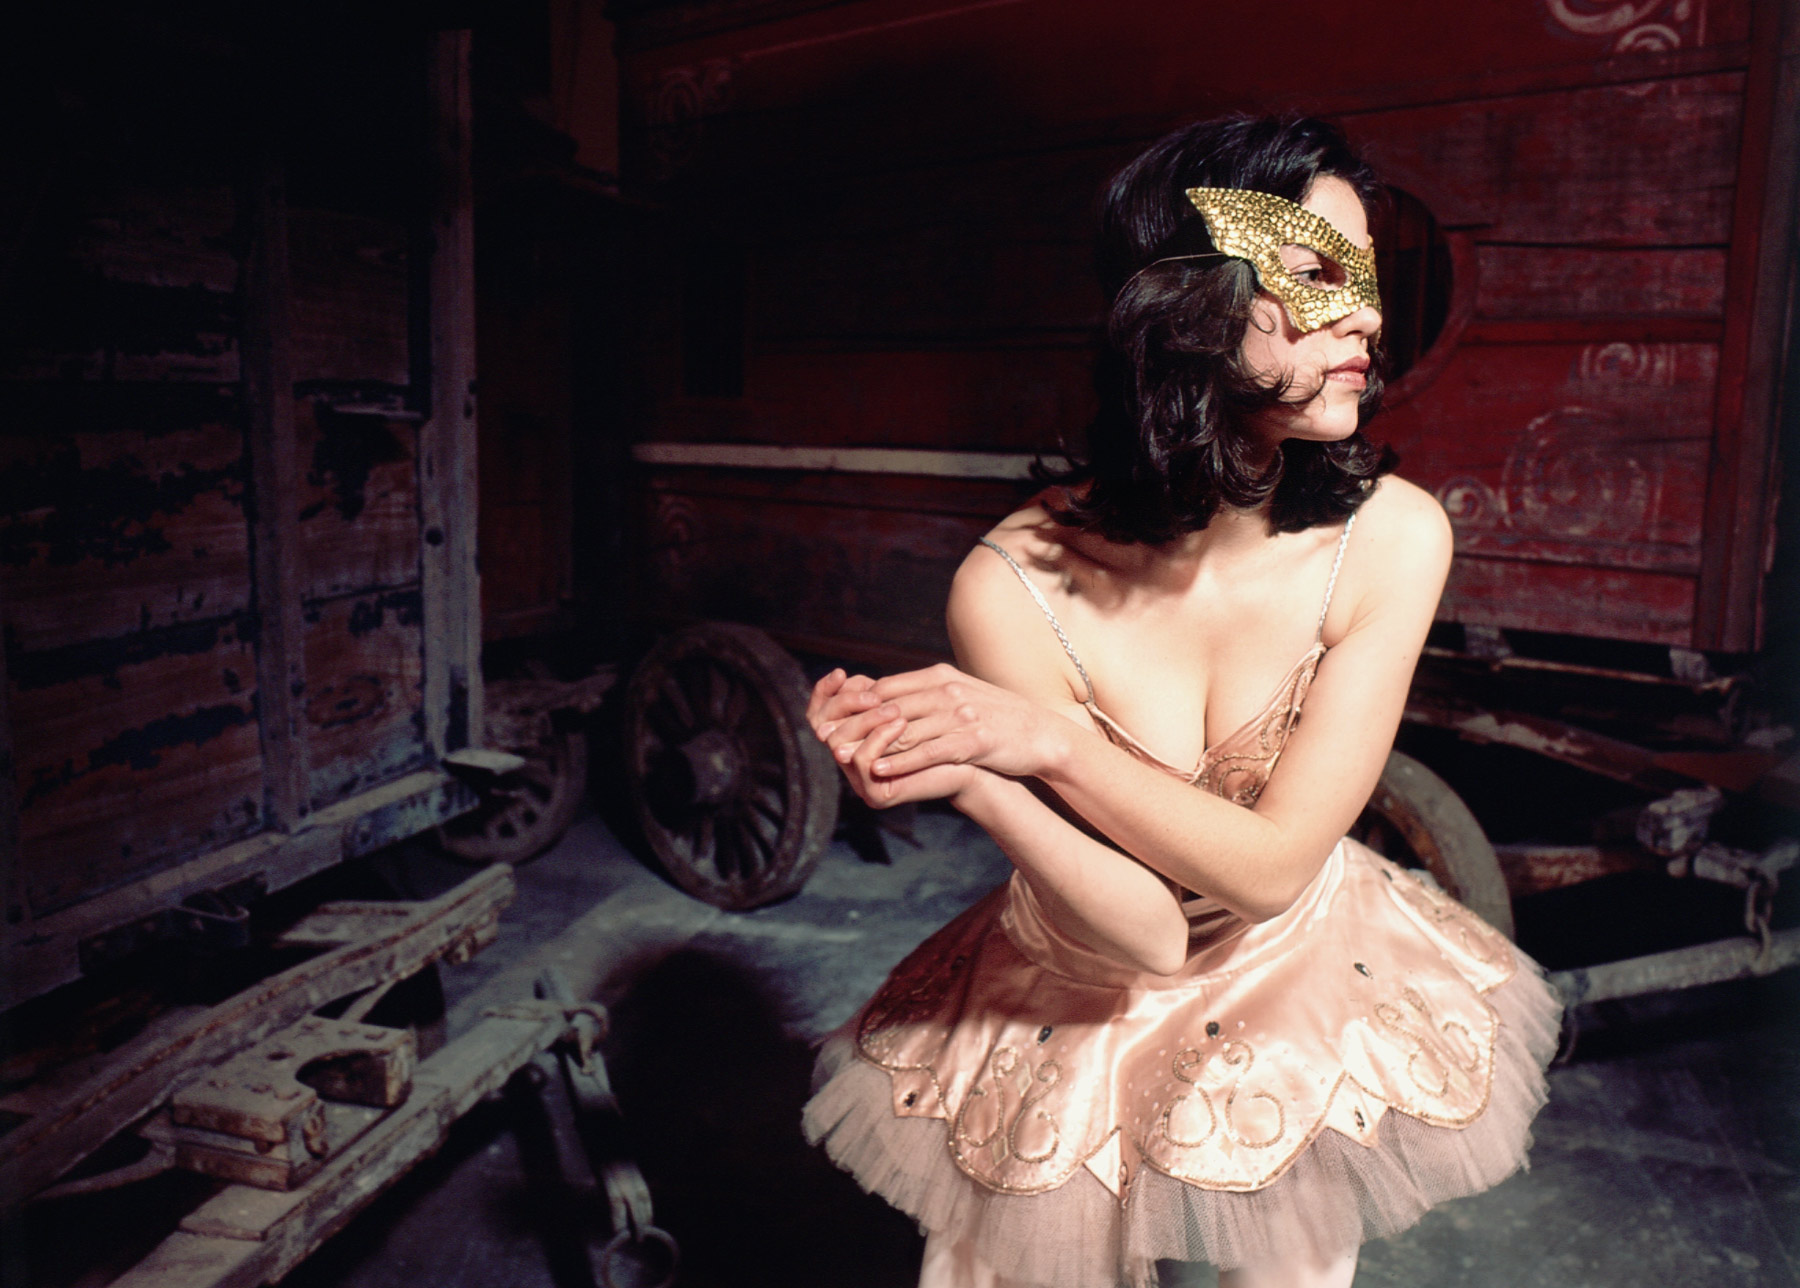 Conceptual portrait photography - woman wearing a ballerina costume and gold mask surrounded by vintage circus wagons.